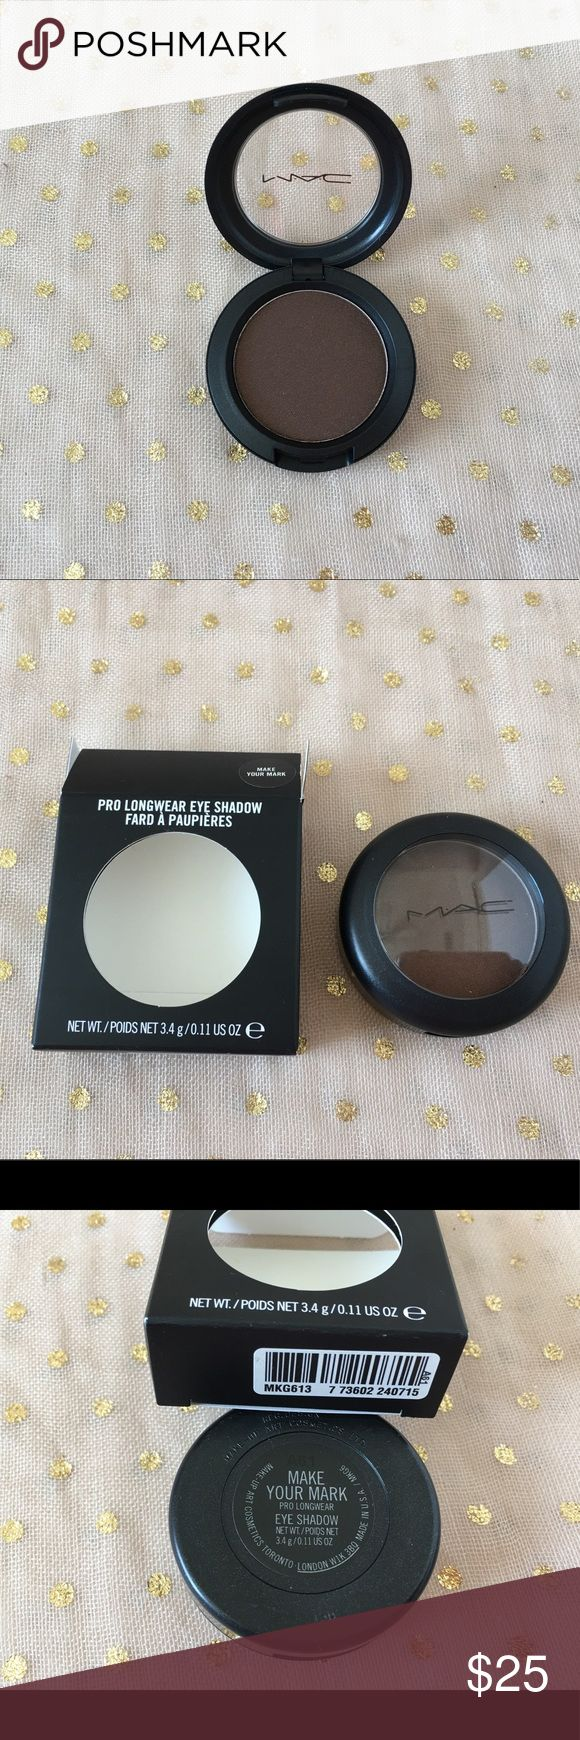 MAC Pro Longwear Eyeshadow Make Your Mark New in box. Never used or swatched. MAC Pro Longwear Eyeshadow in Make Your Mark, large eyeshadow (3.4g). Limited Edition. MAC Cosmetics Makeup Eyeshadow